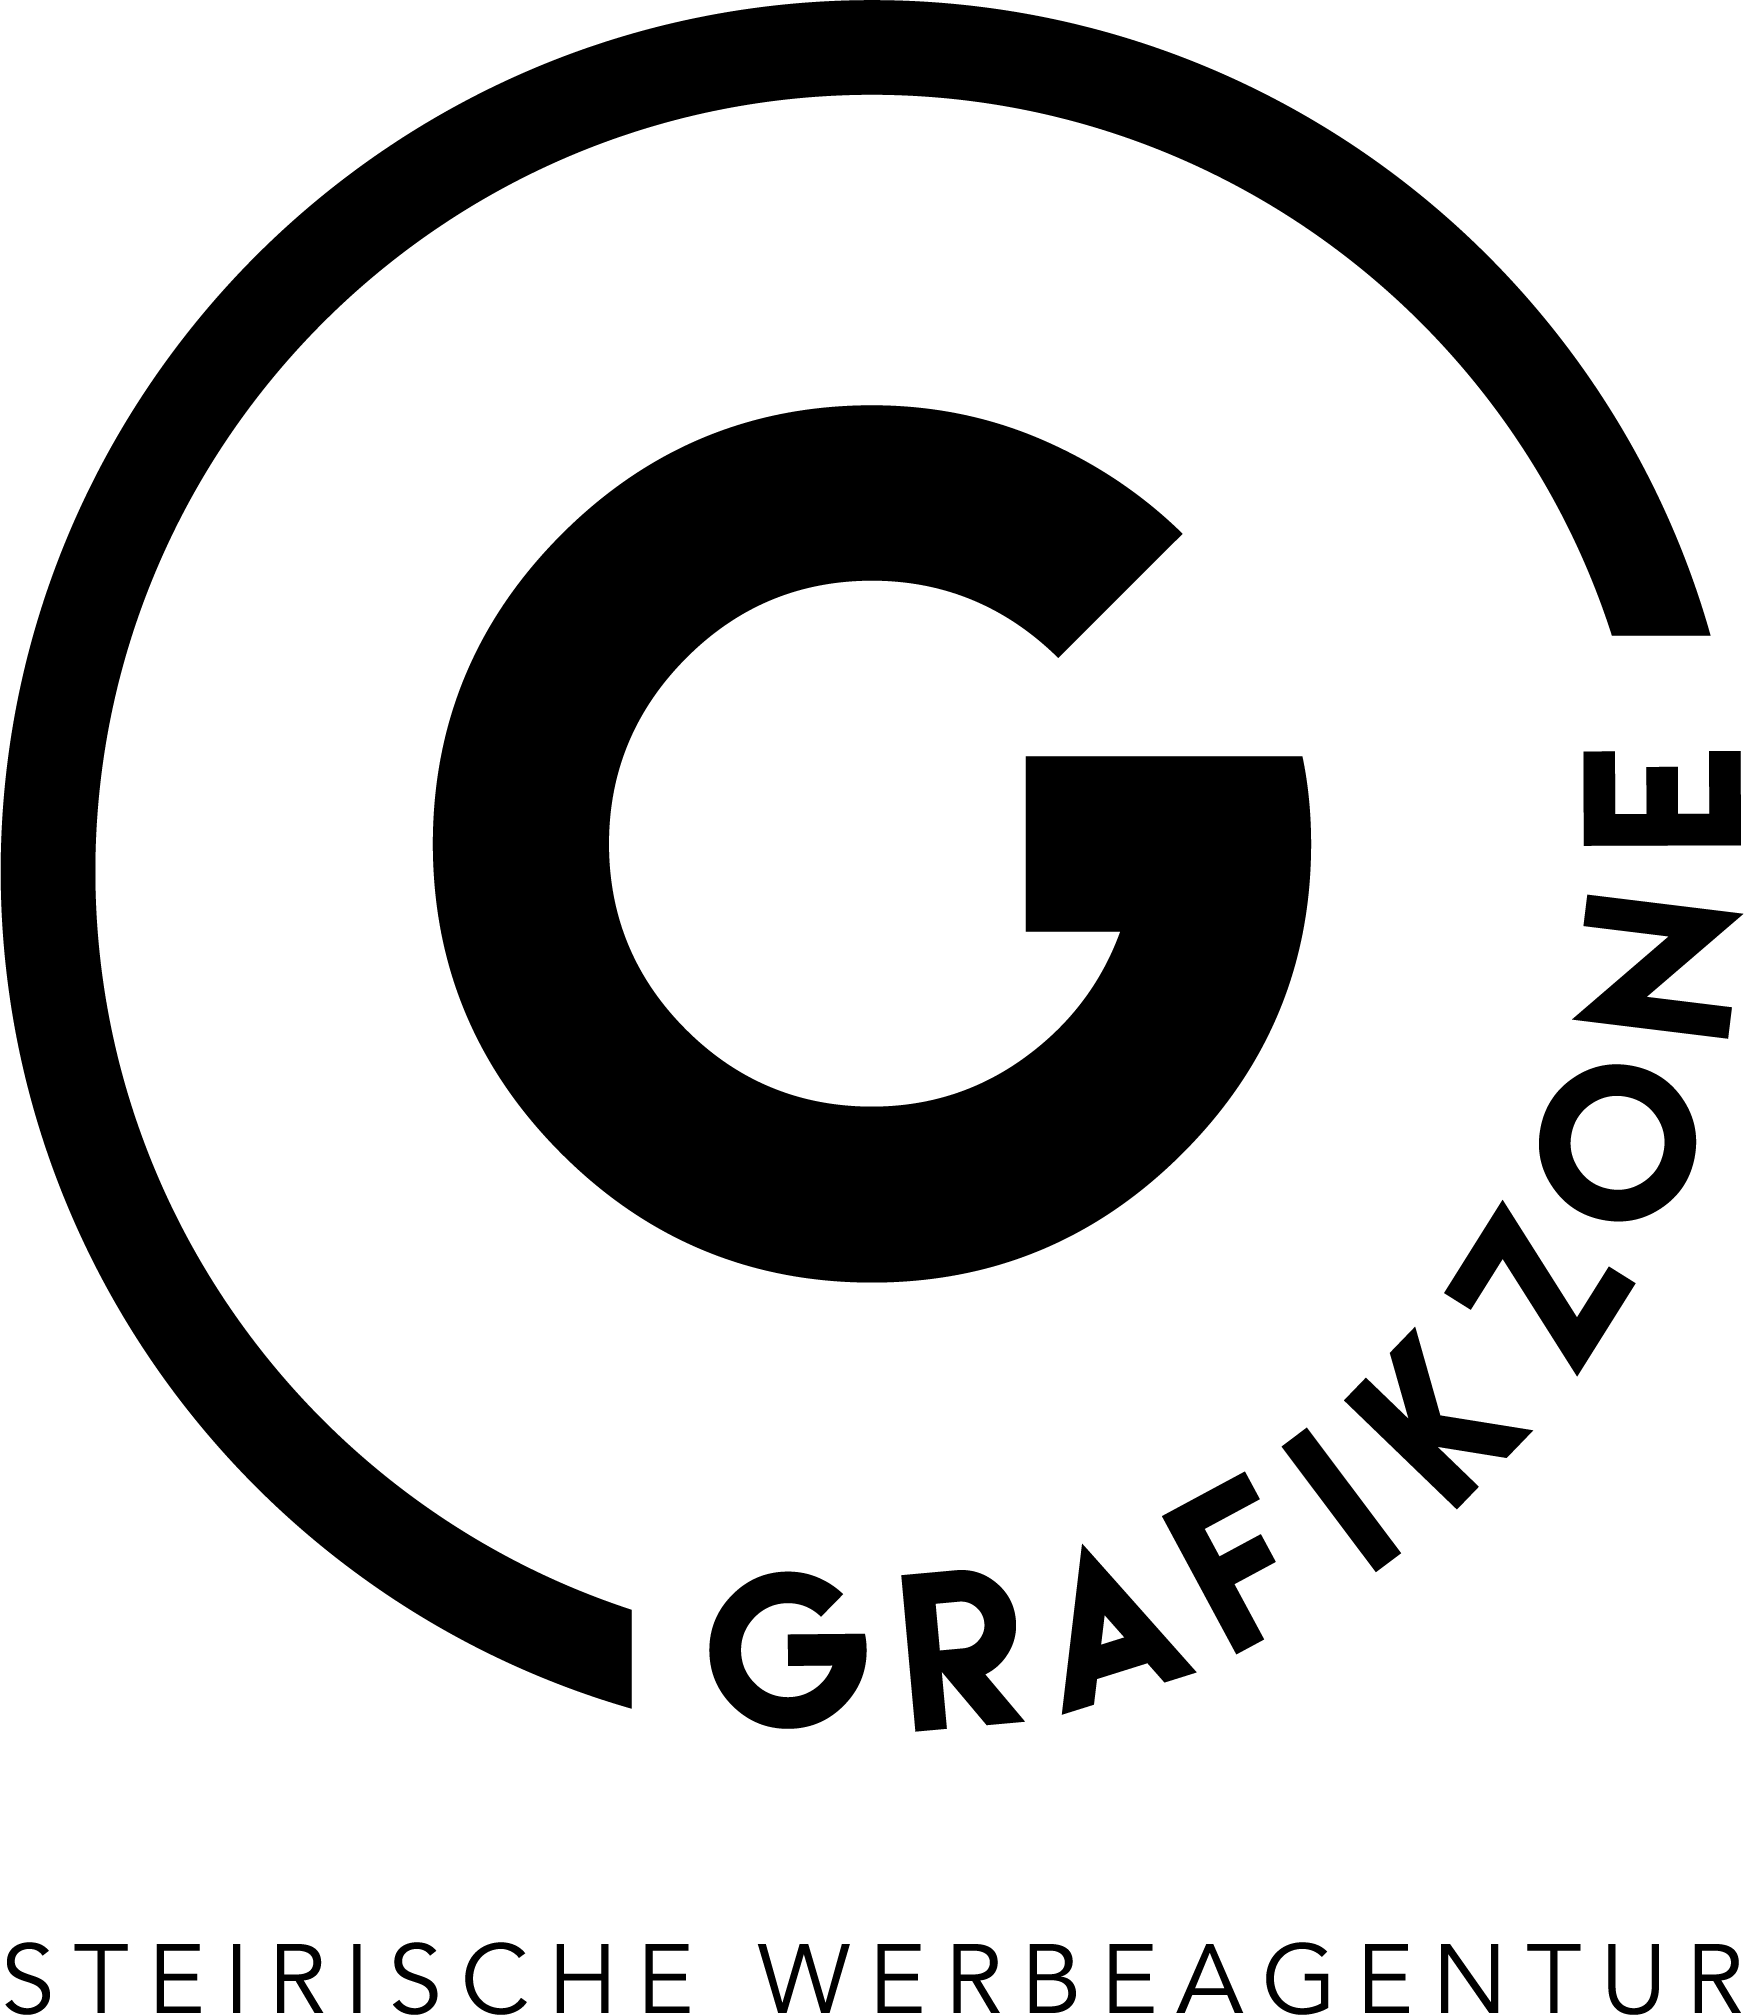 tg-grafikzone.at